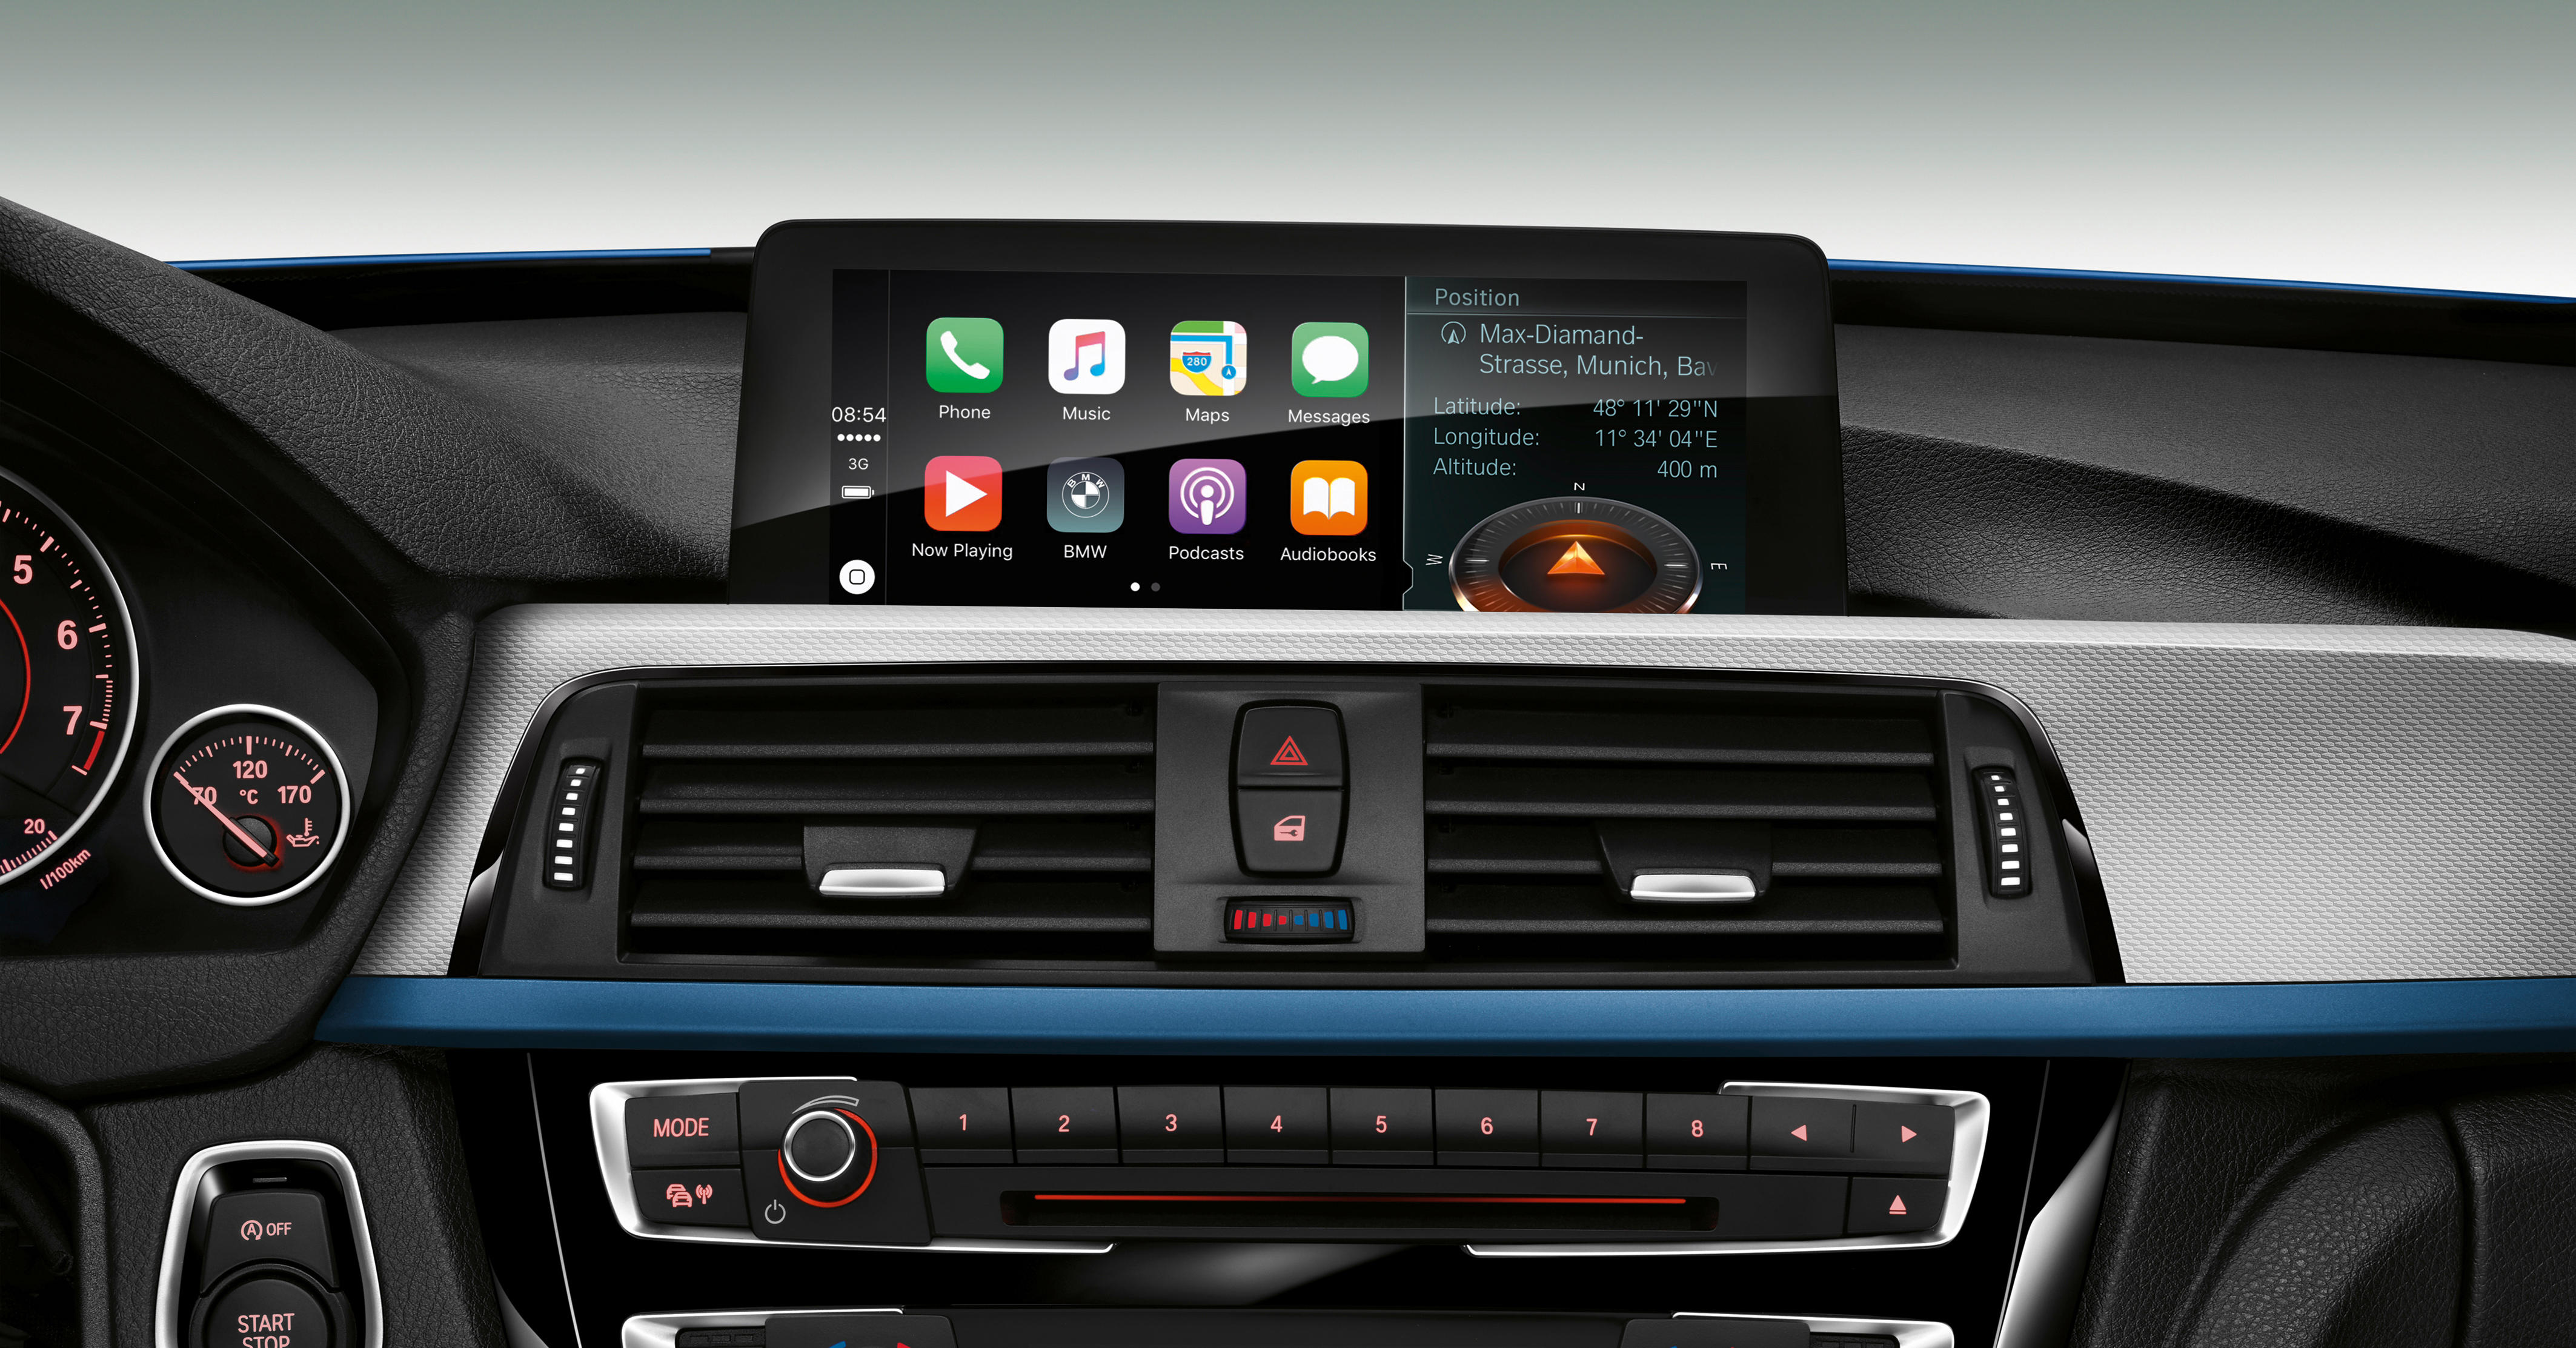 Bmw Drops Apple Carplay Subscription Fees In All Markets Including Malaysia No Future Charges Paultan Org